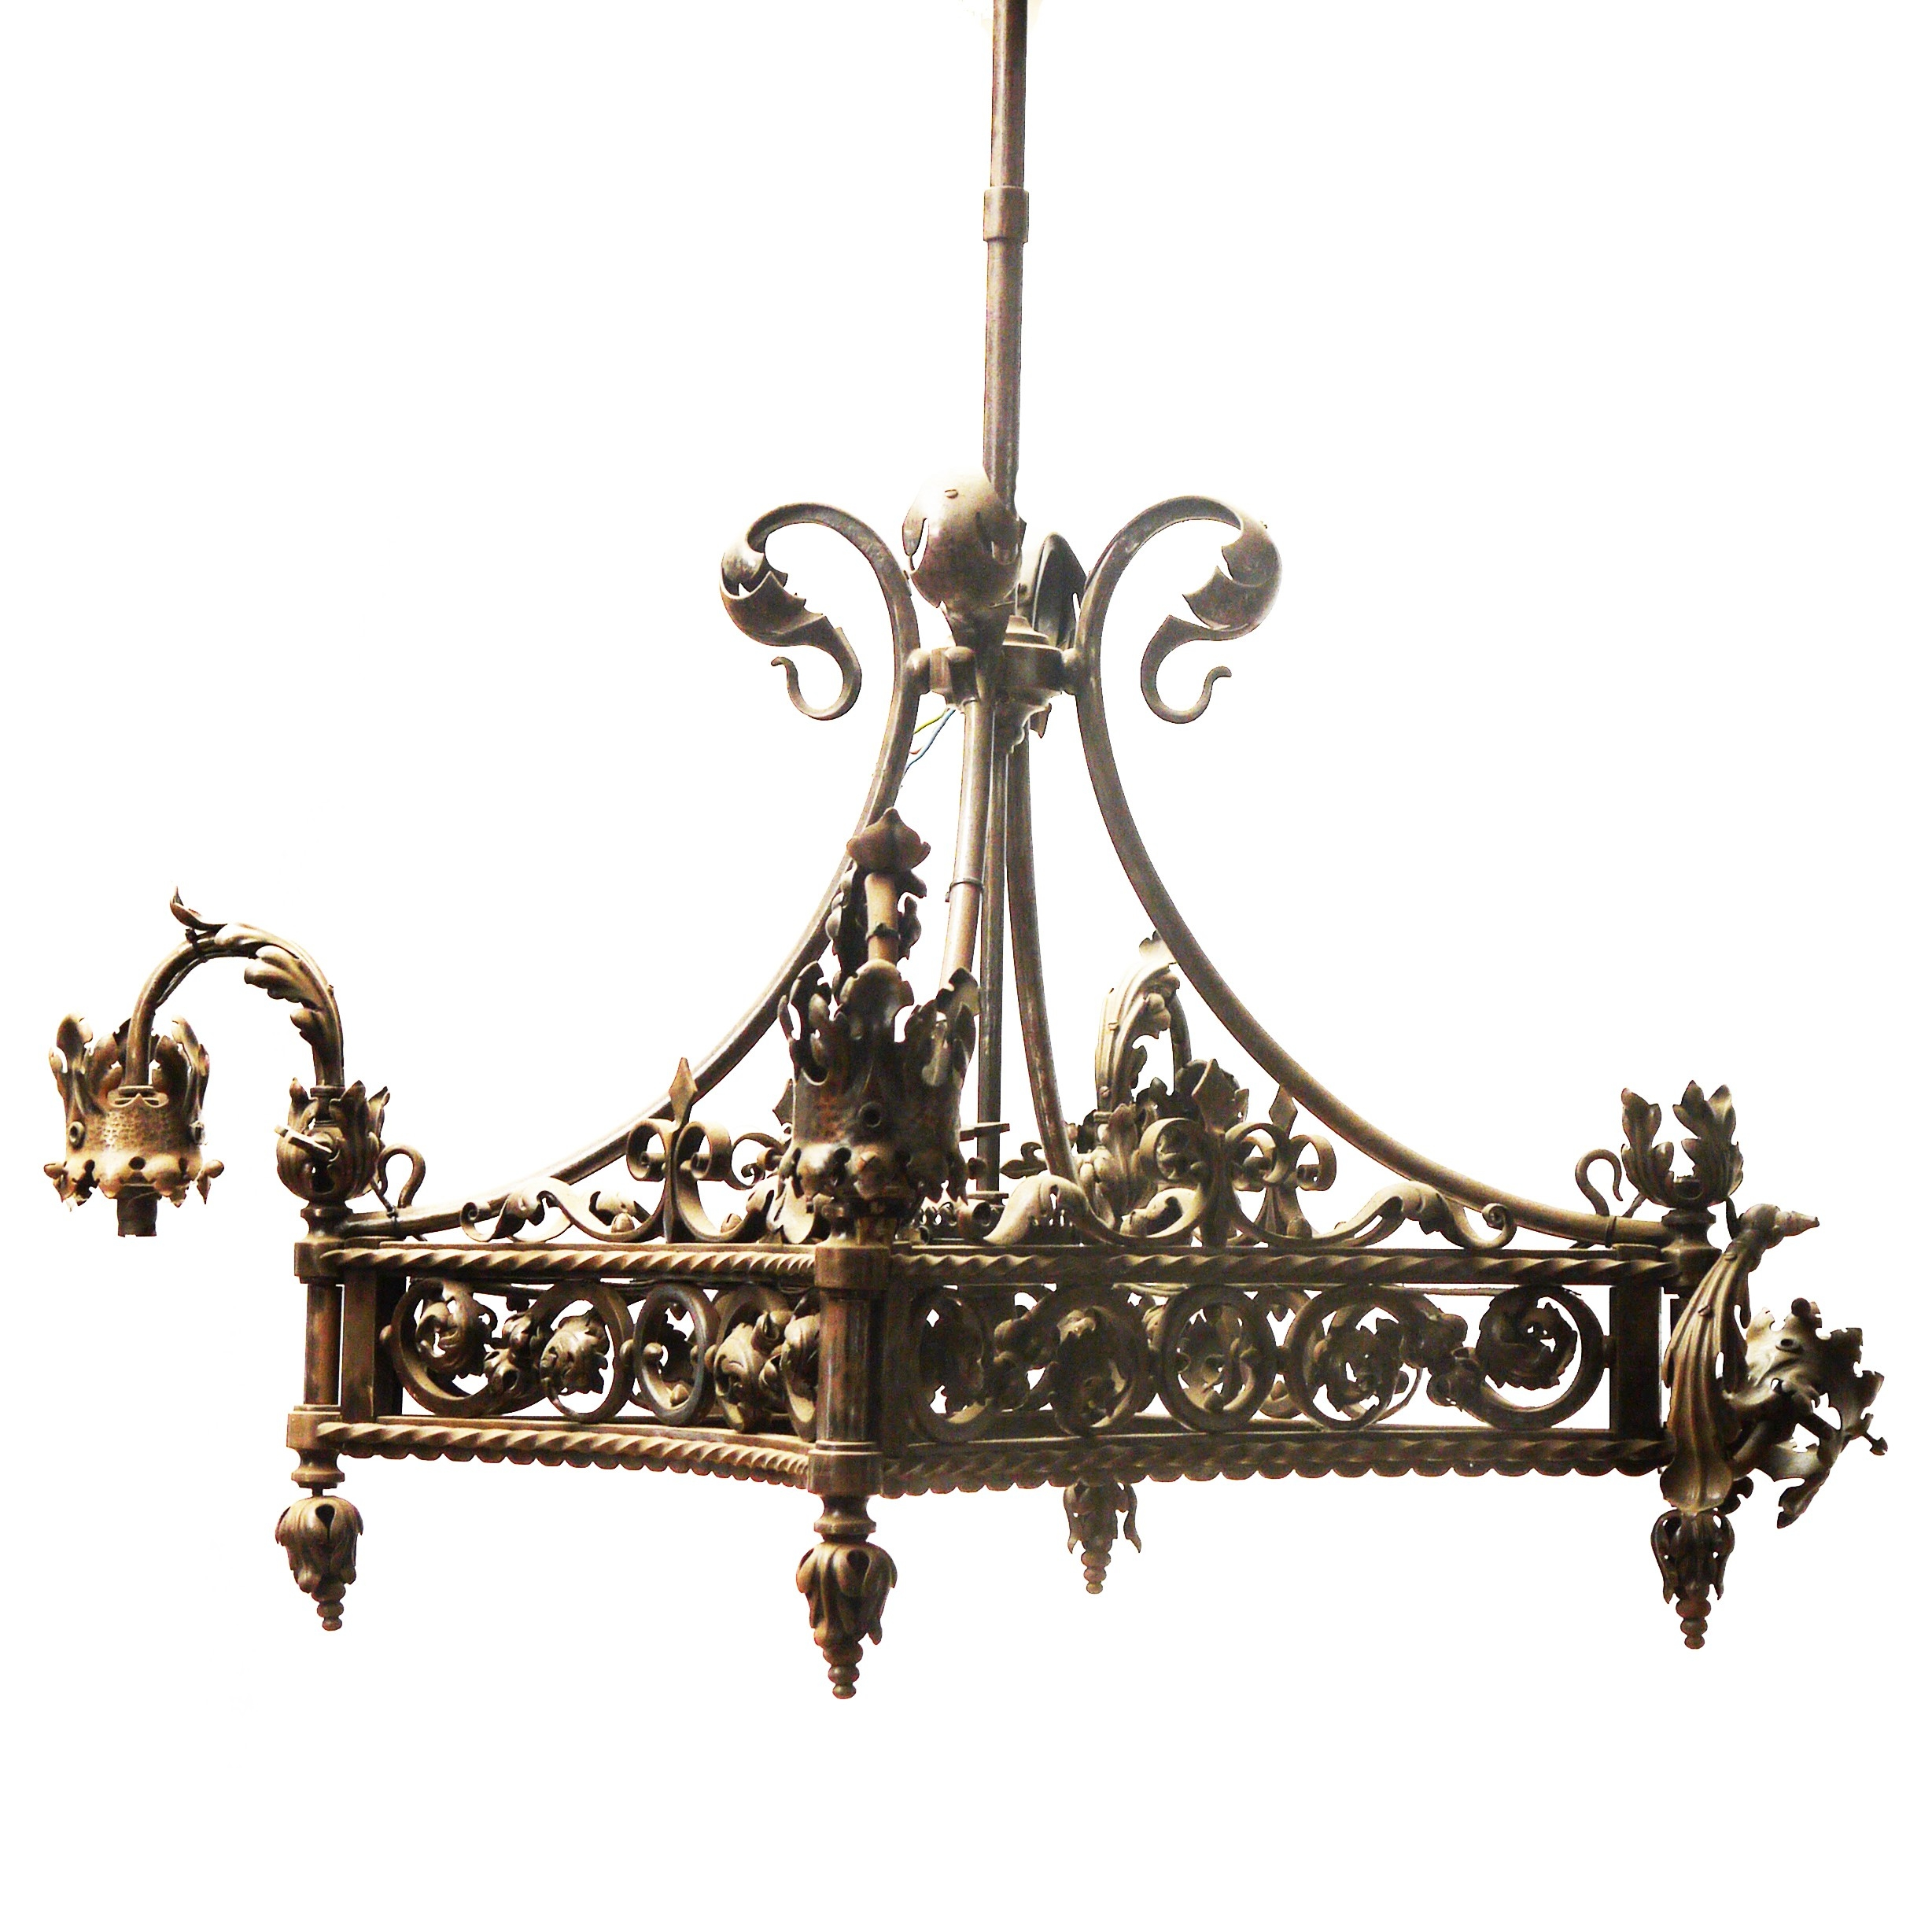 Furniture Classic French Chandelier Antique For Your Home Inside French Antique Chandeliers (Image 12 of 15)